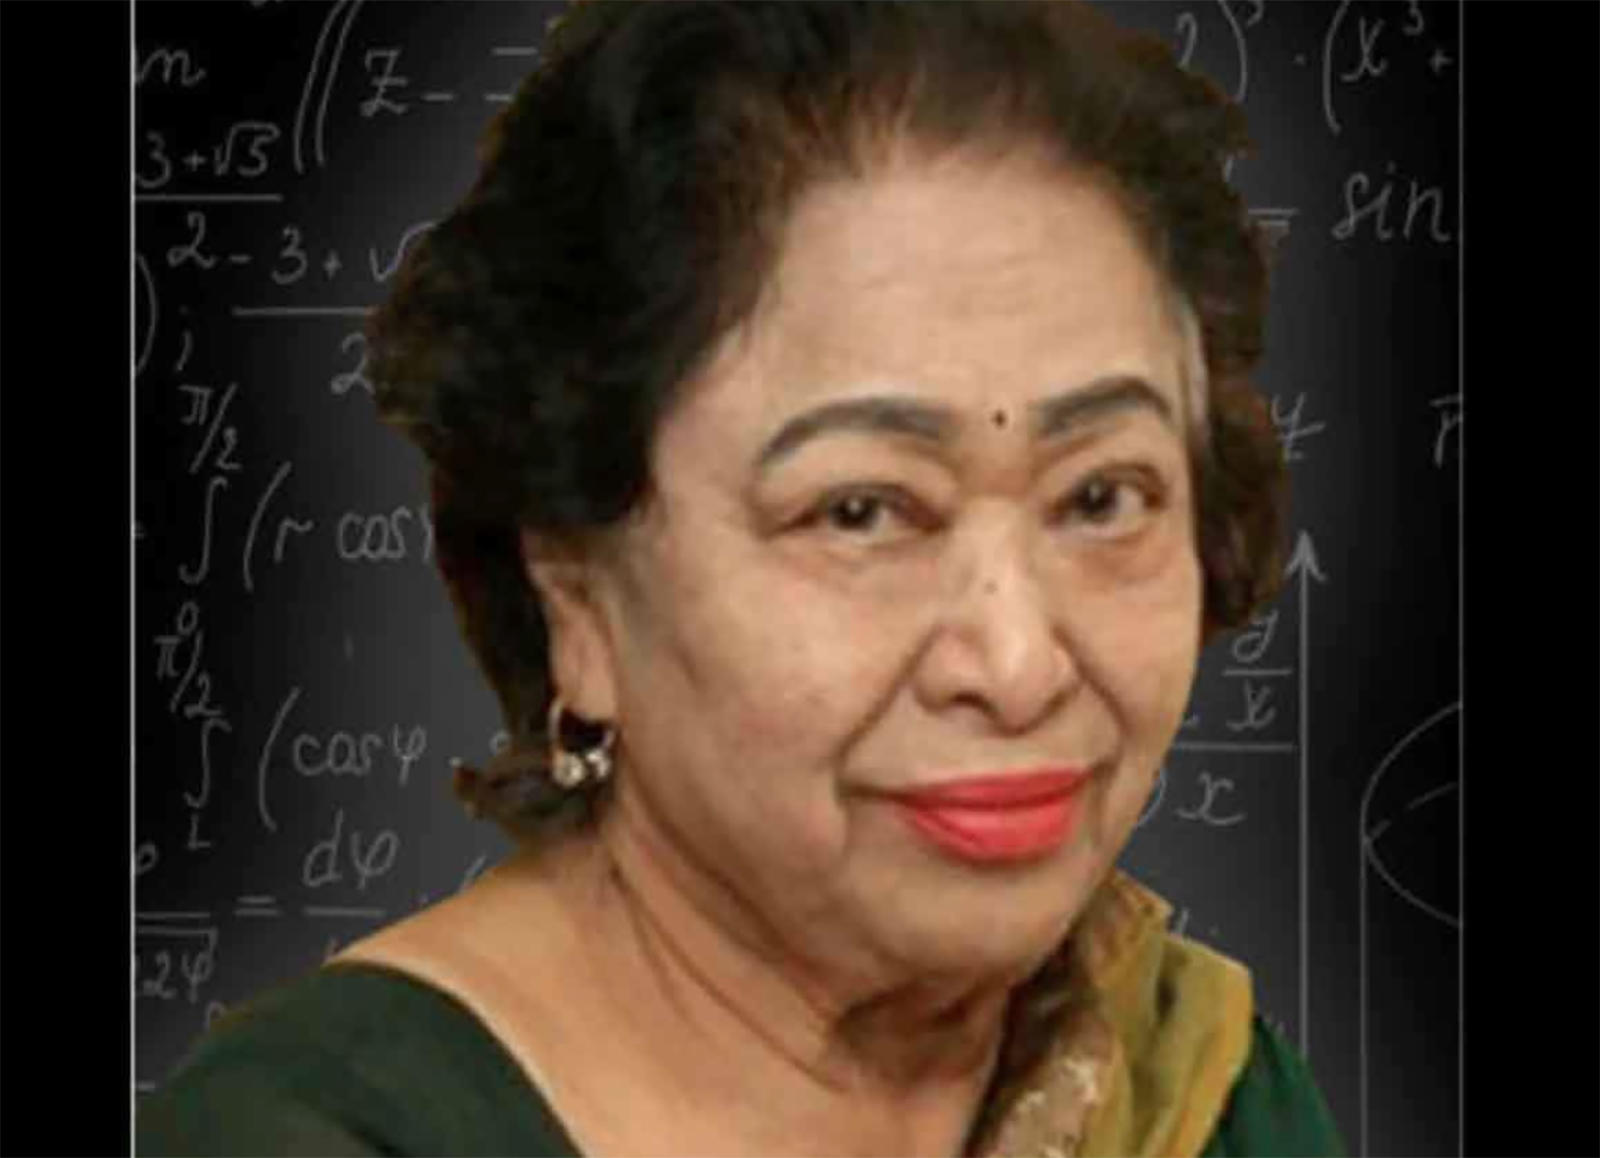 today-in-history-shakuntala-devi-mentally-multiplies-two-13-digit-numbers-in-28-sec